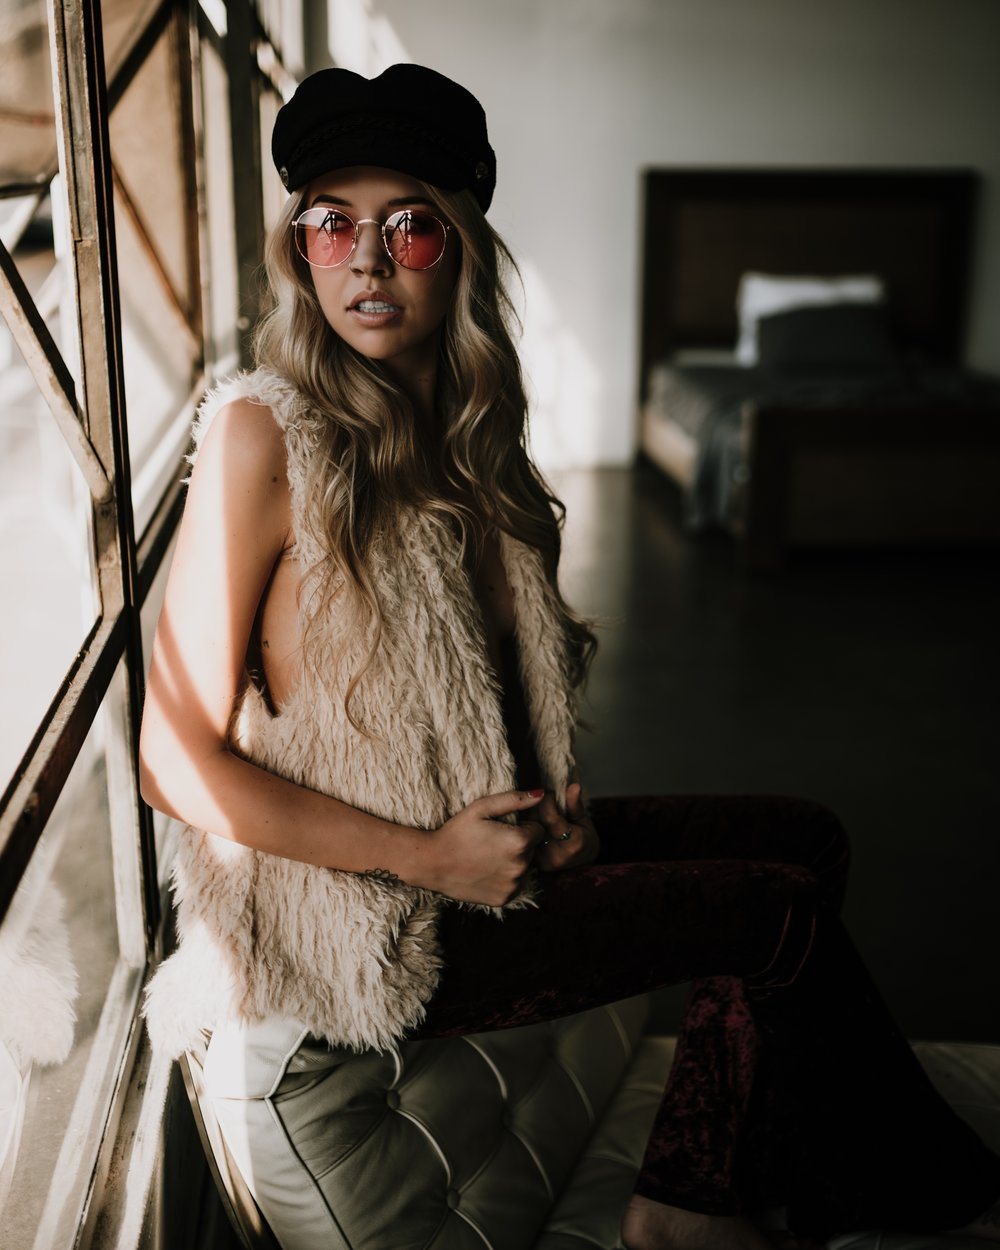 featured-artist-tribe-photo-co-brody-harford-02.jpg